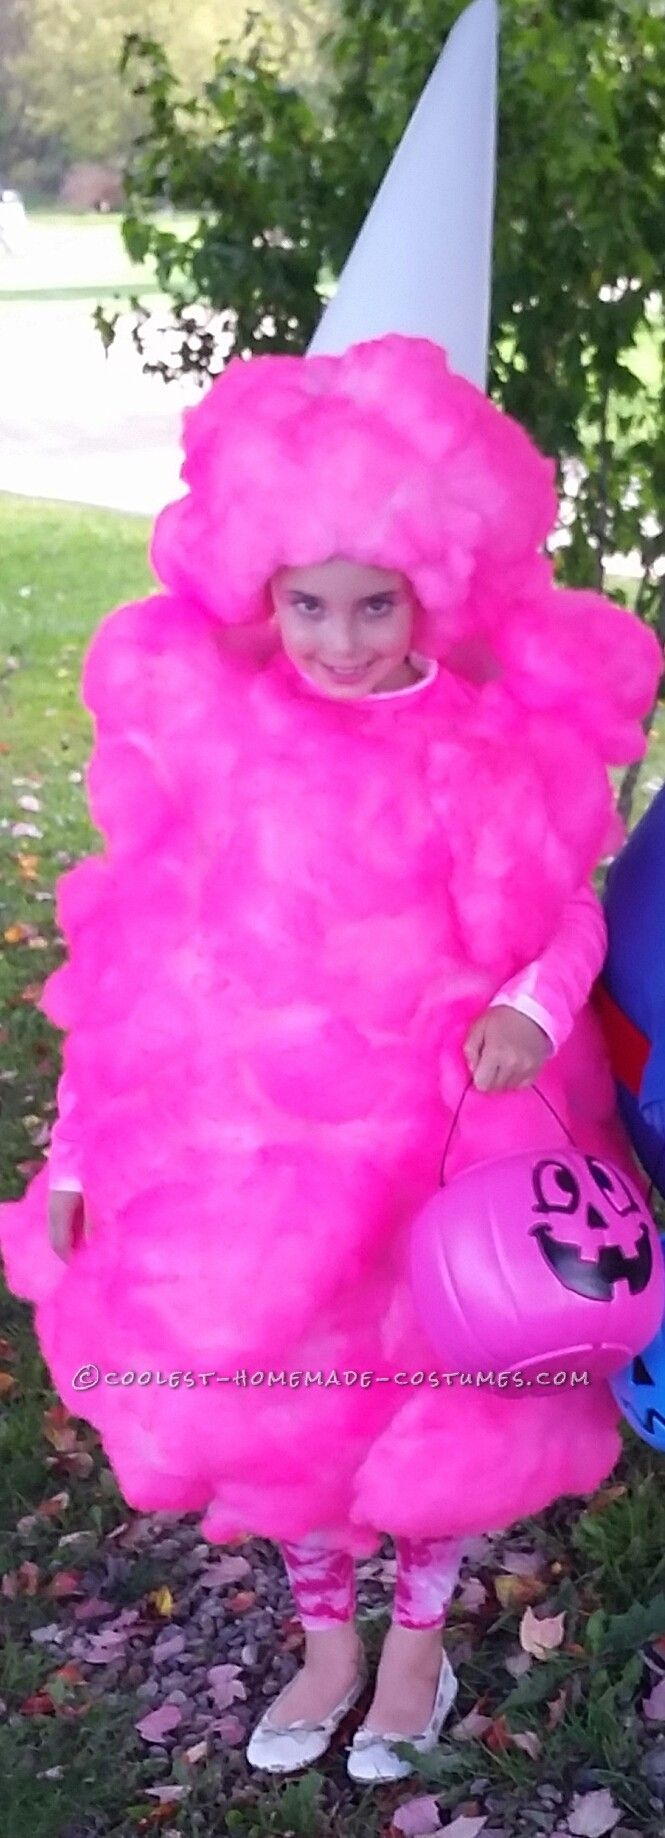 Cool Pink Cotton Candy Costume for a Girl... Coolest Halloween Costume Contest